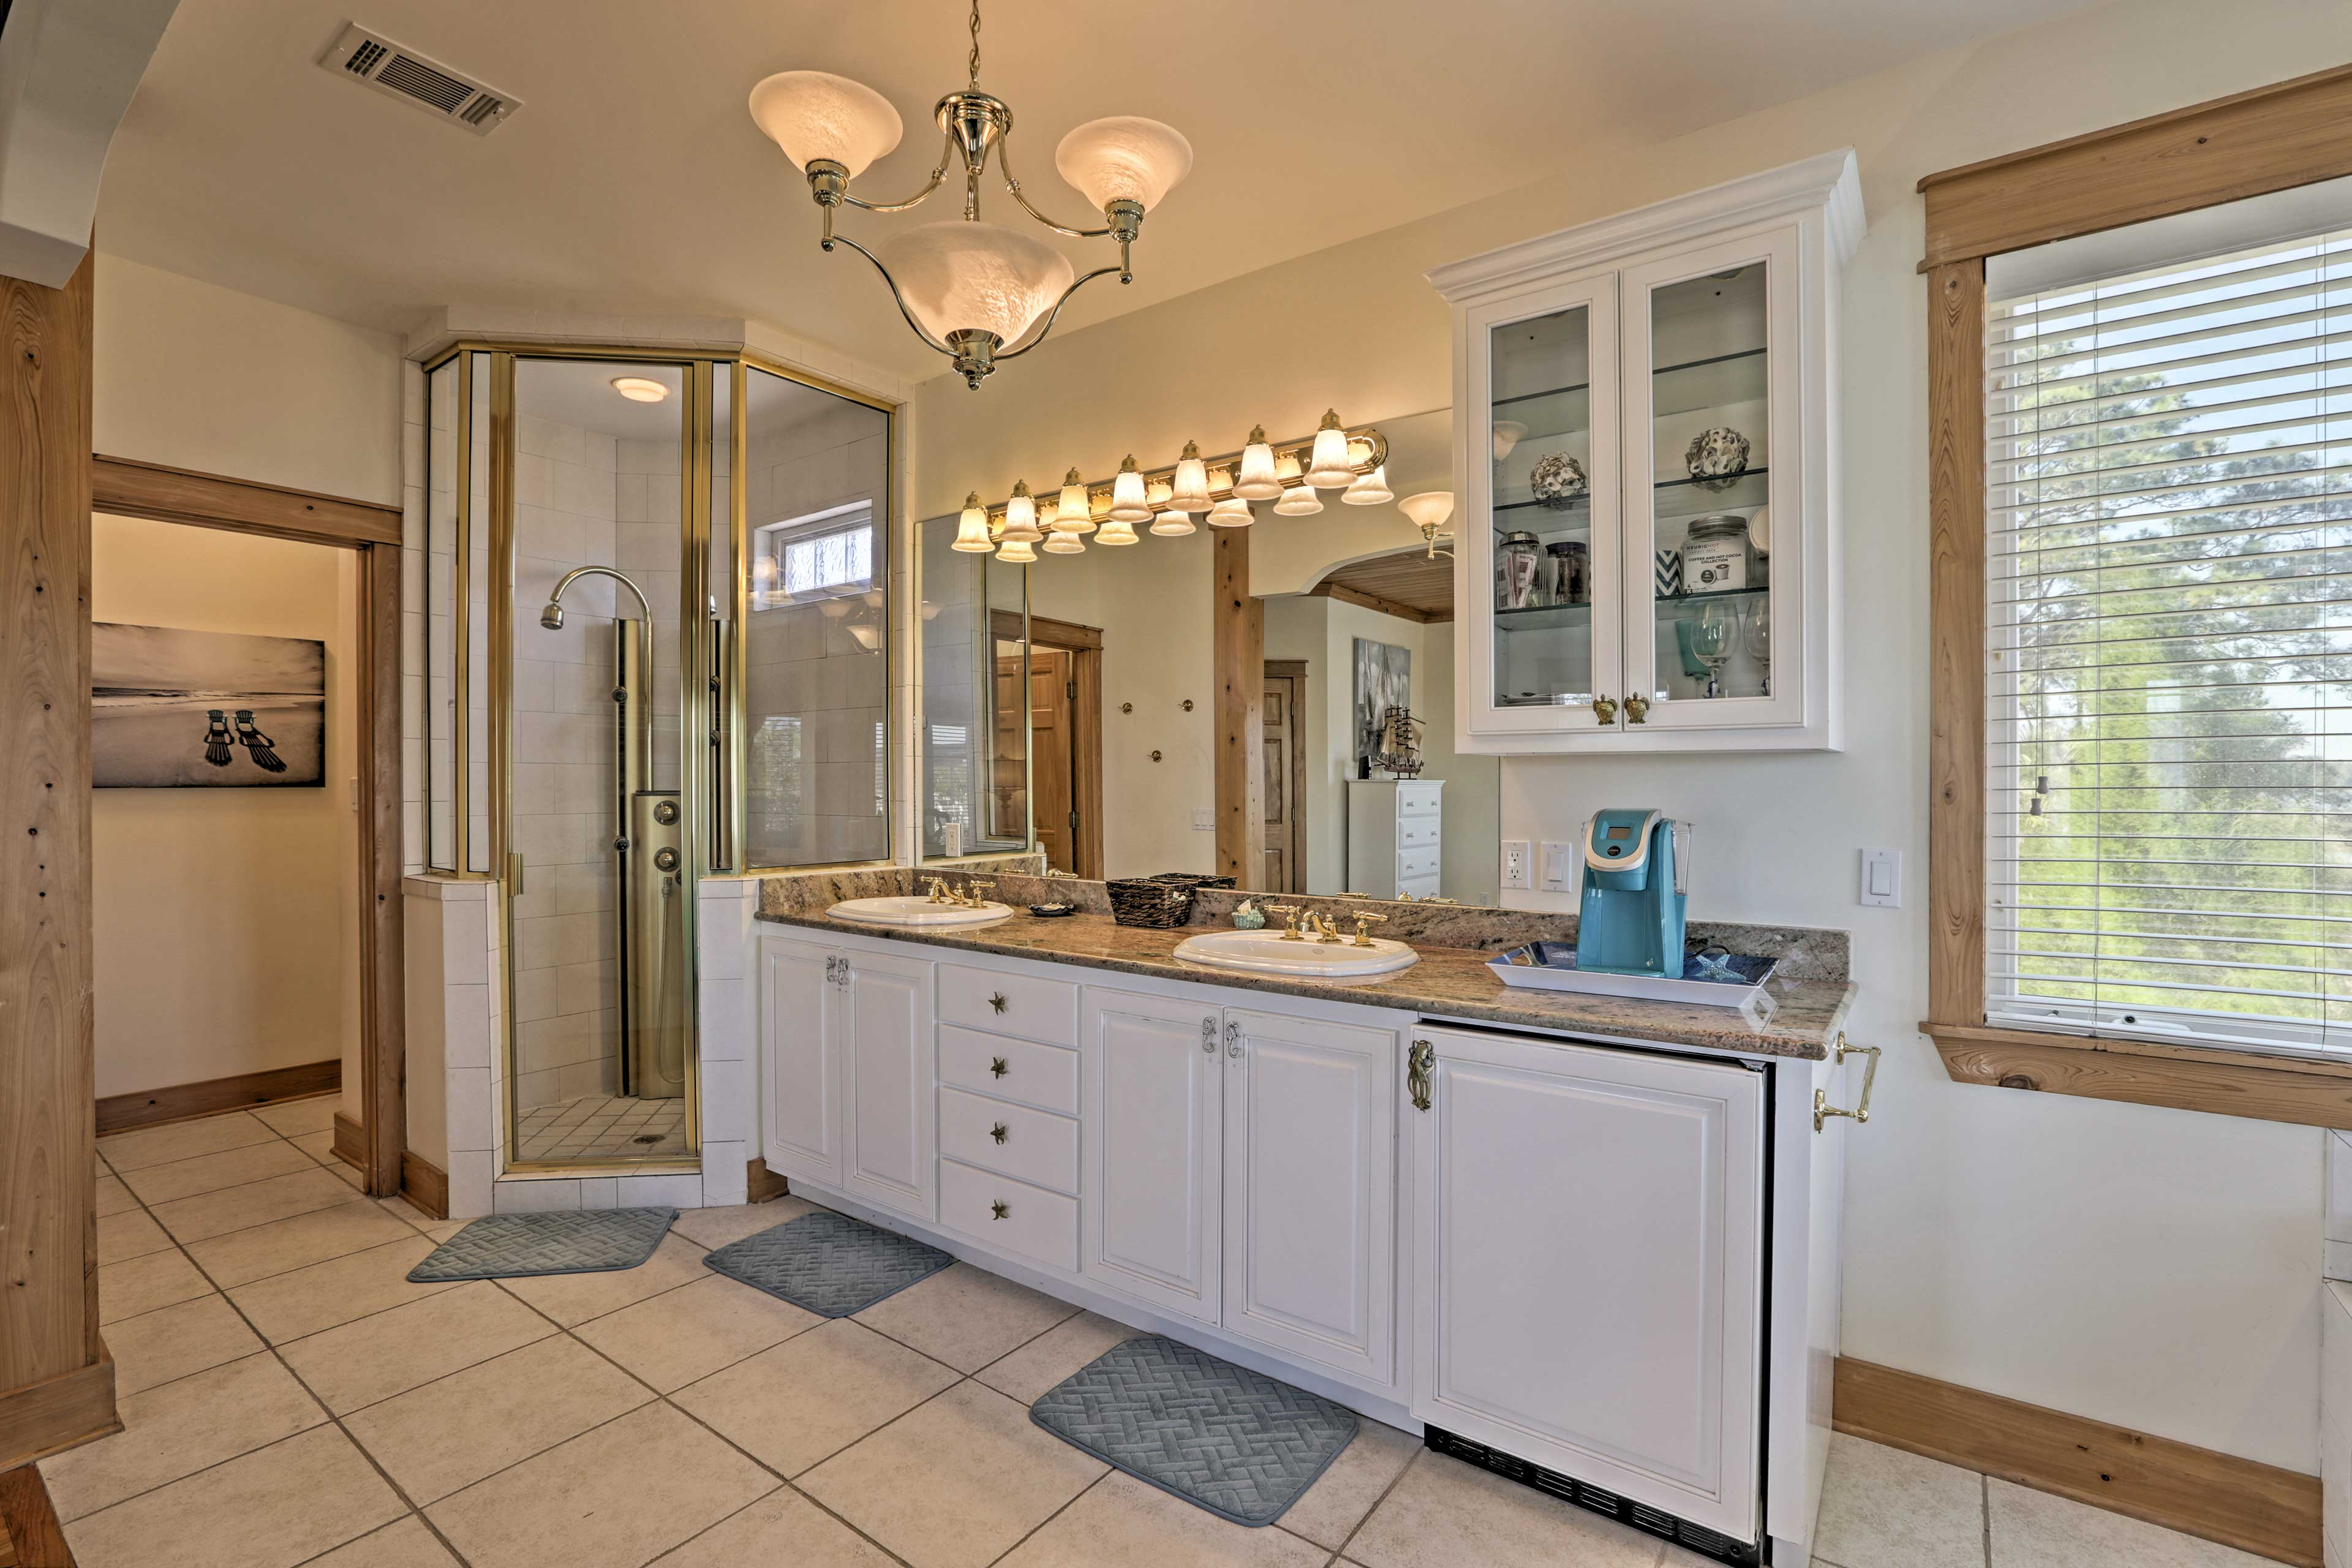 This huge en-suite bathroom boasts a walk-in shower, spacious double vanity,  jetted tub and mini fridge.